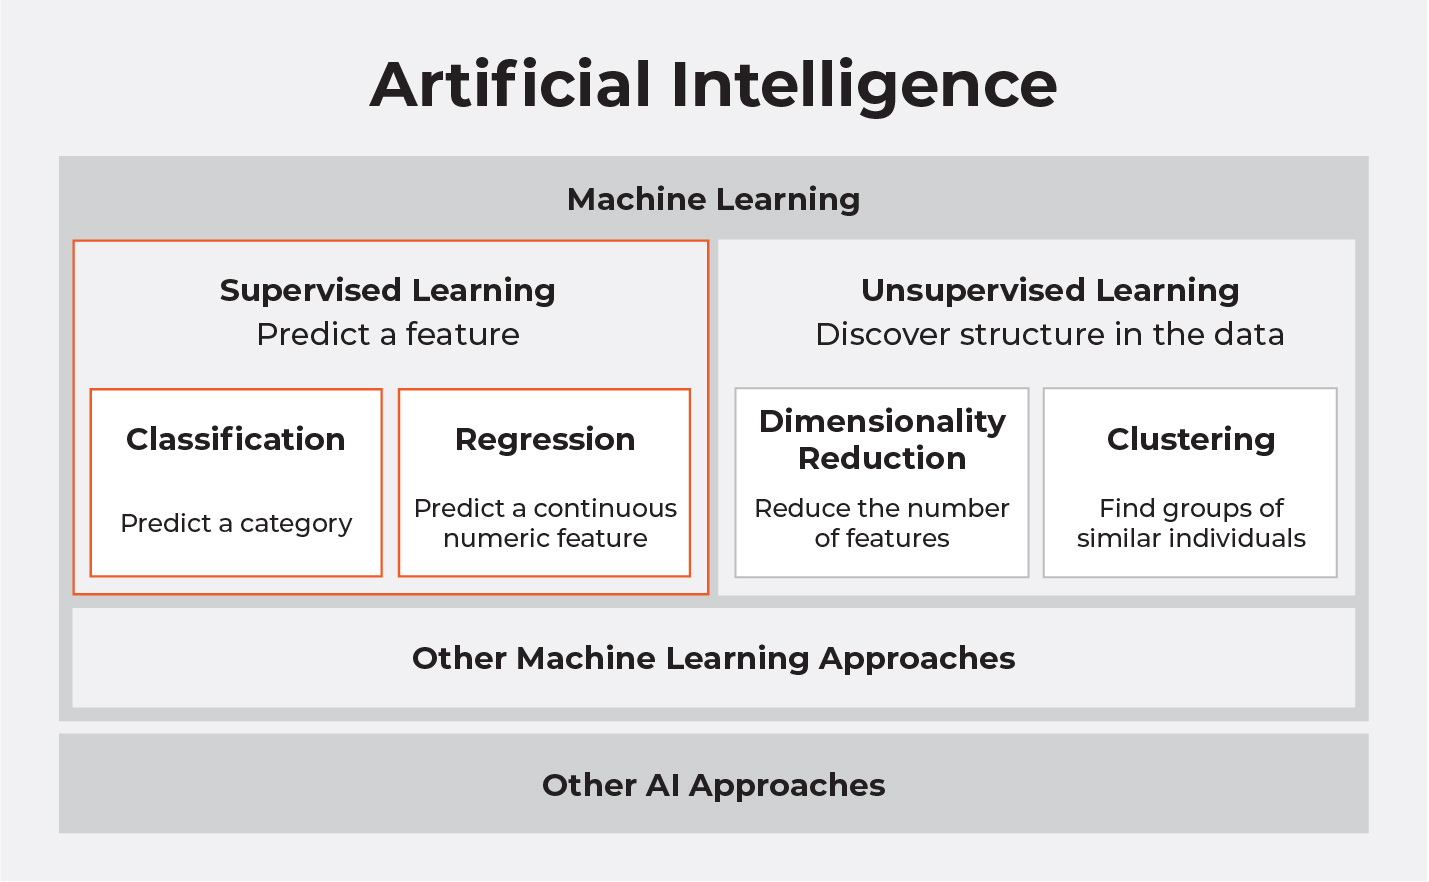 Where supervised learning fits into machine learning, and more broadly, into artificial intelligence